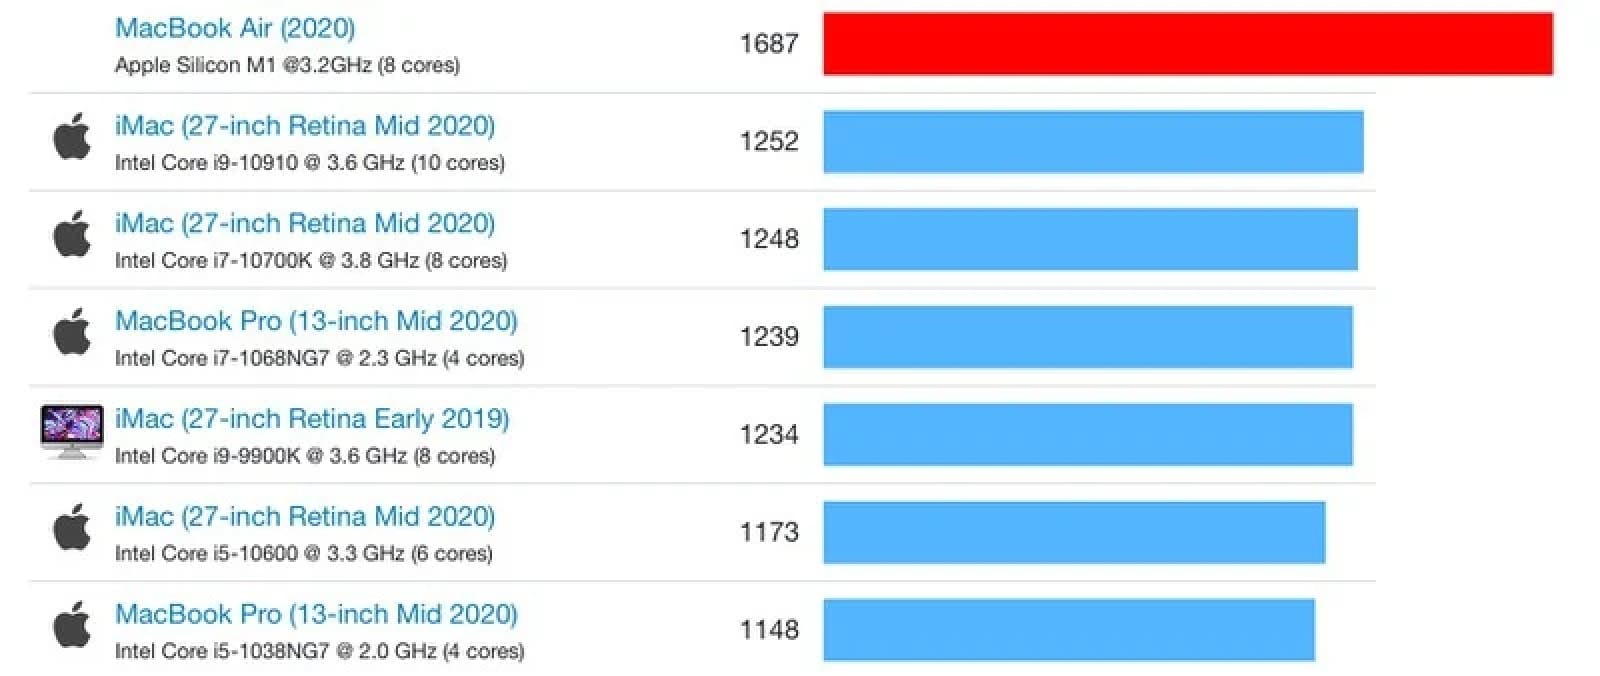 m1 powered macbook air results